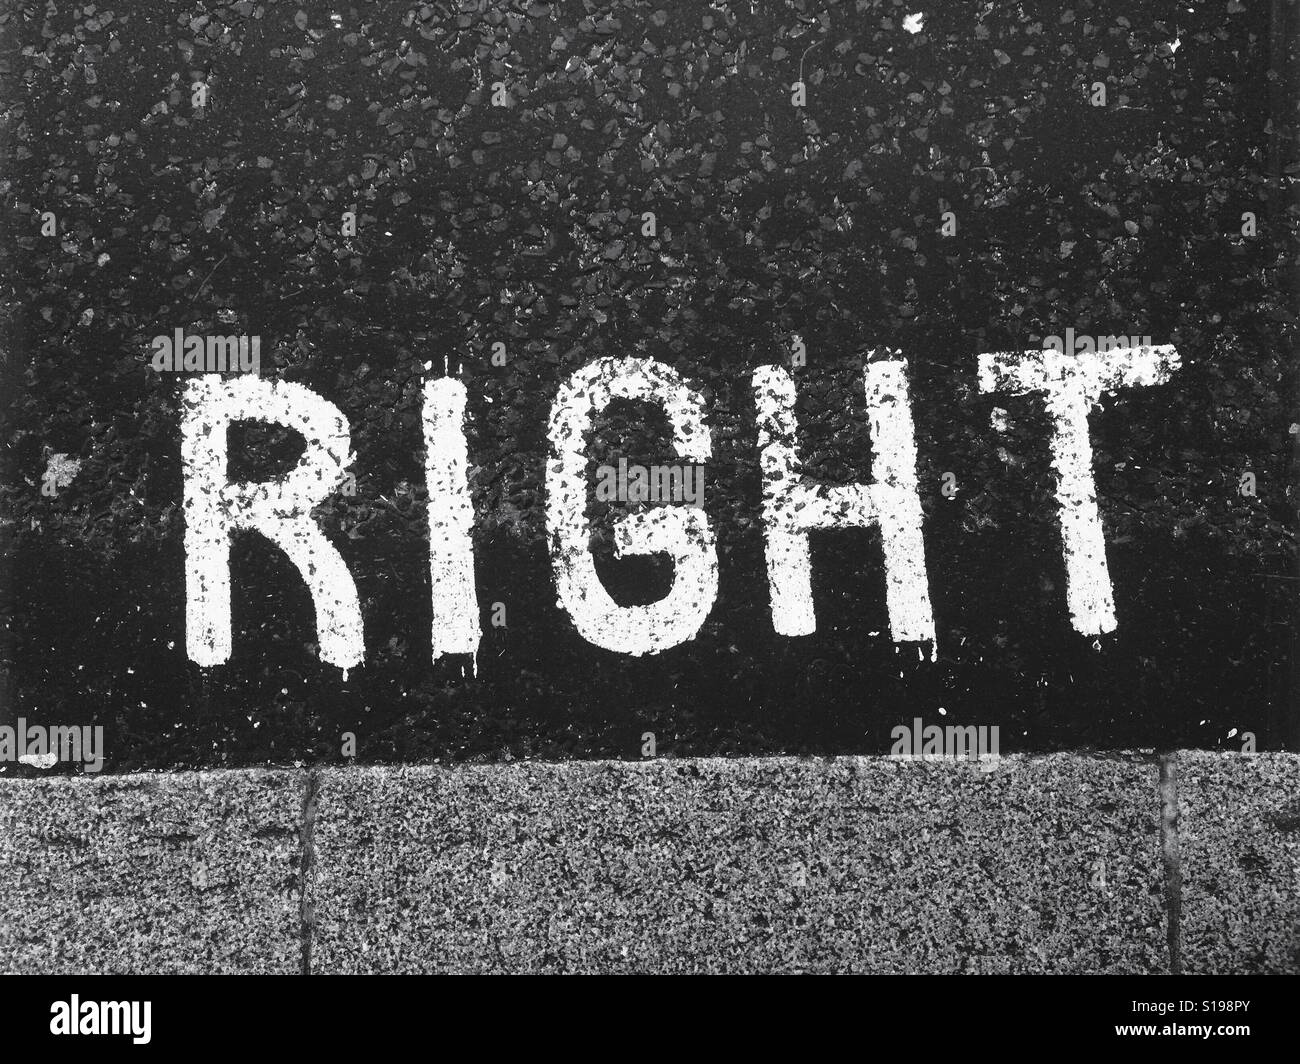 Image result for right word